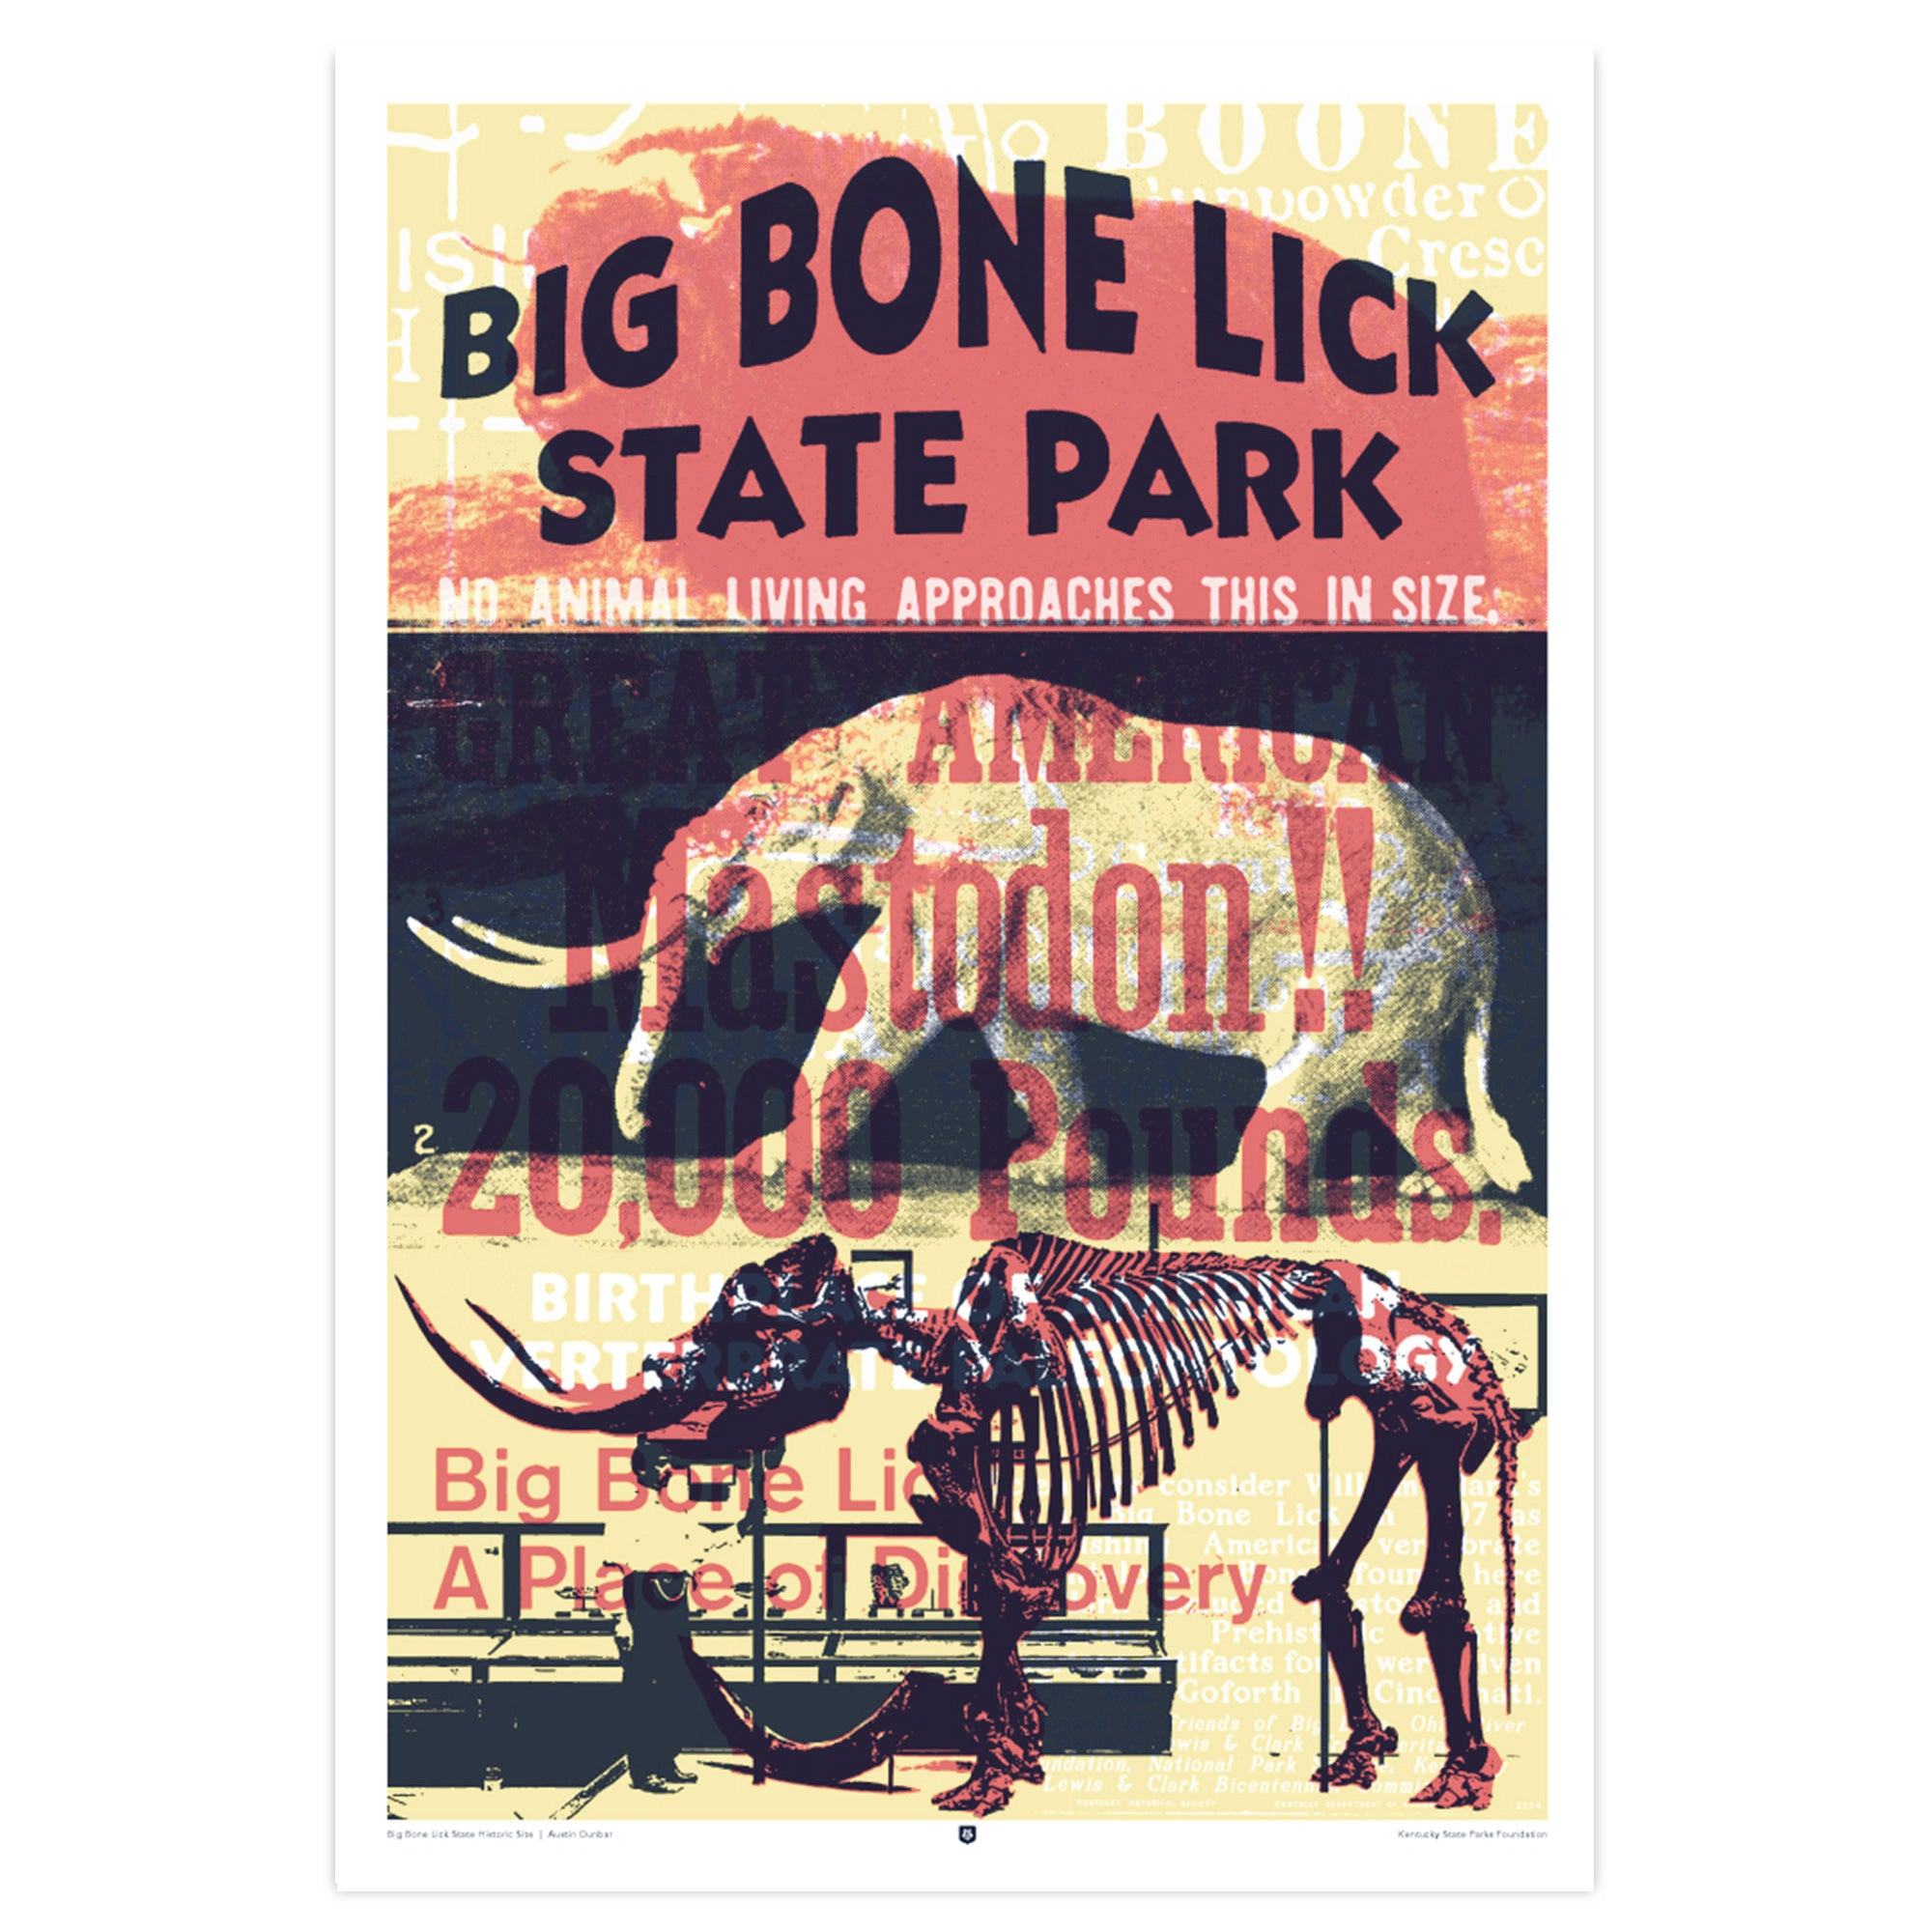 Big Bone Lick State Historic Site Poster by Austin Dunbar-Prints-KY for KY Store